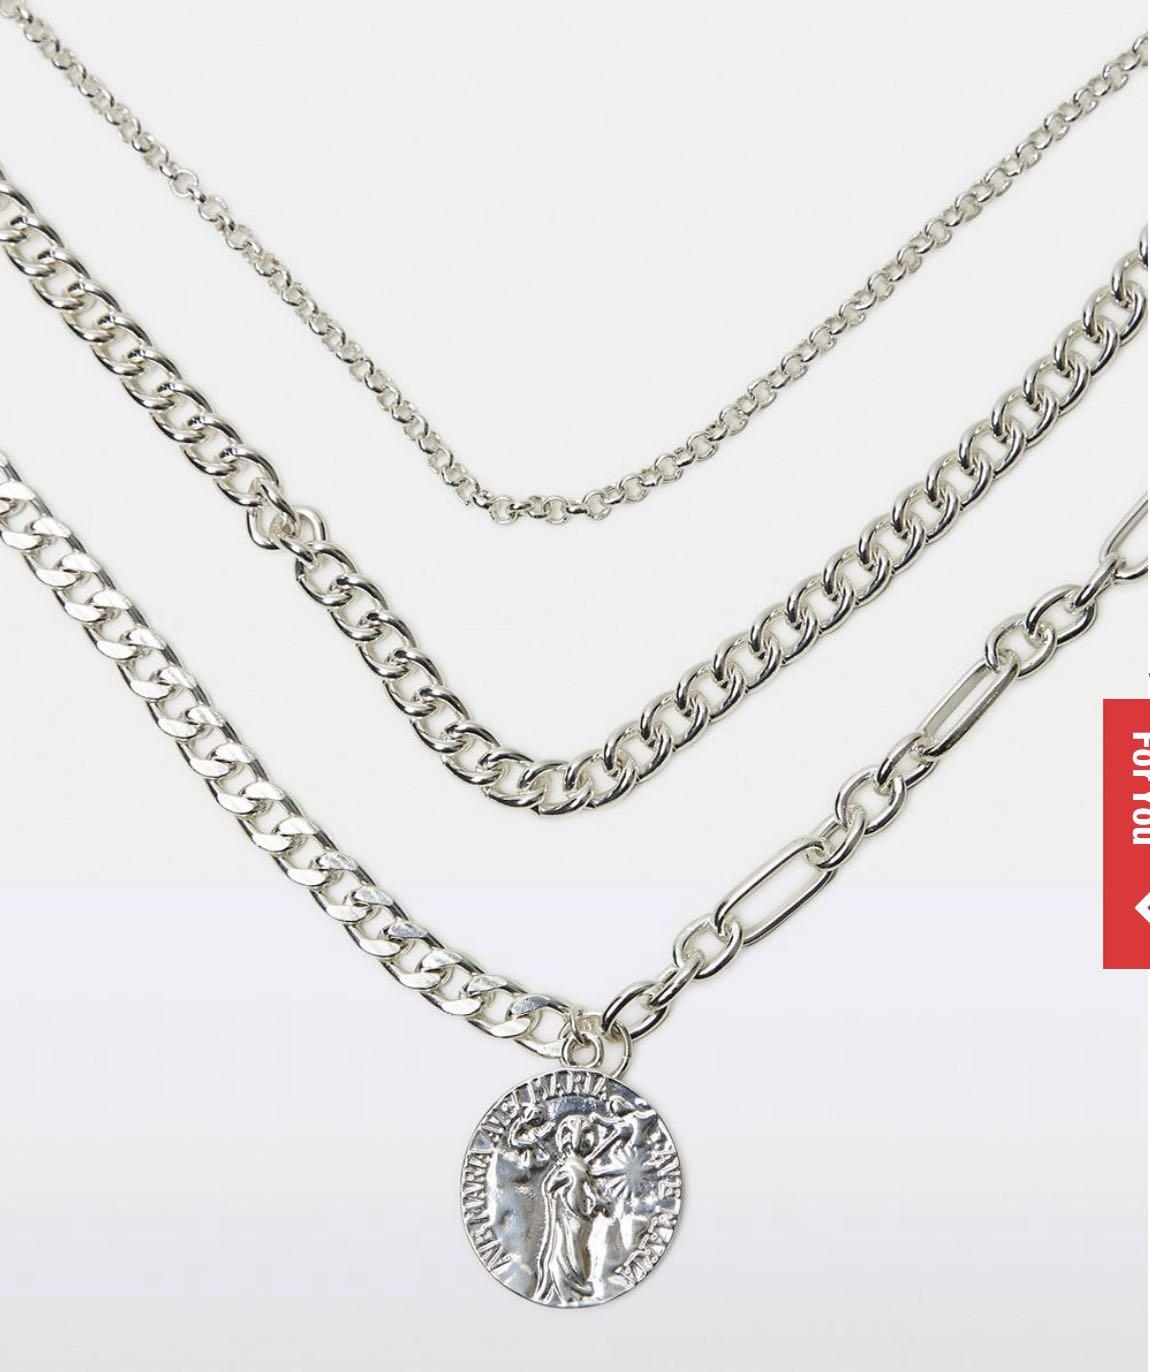 Neon Hart Chain Necklace Silver